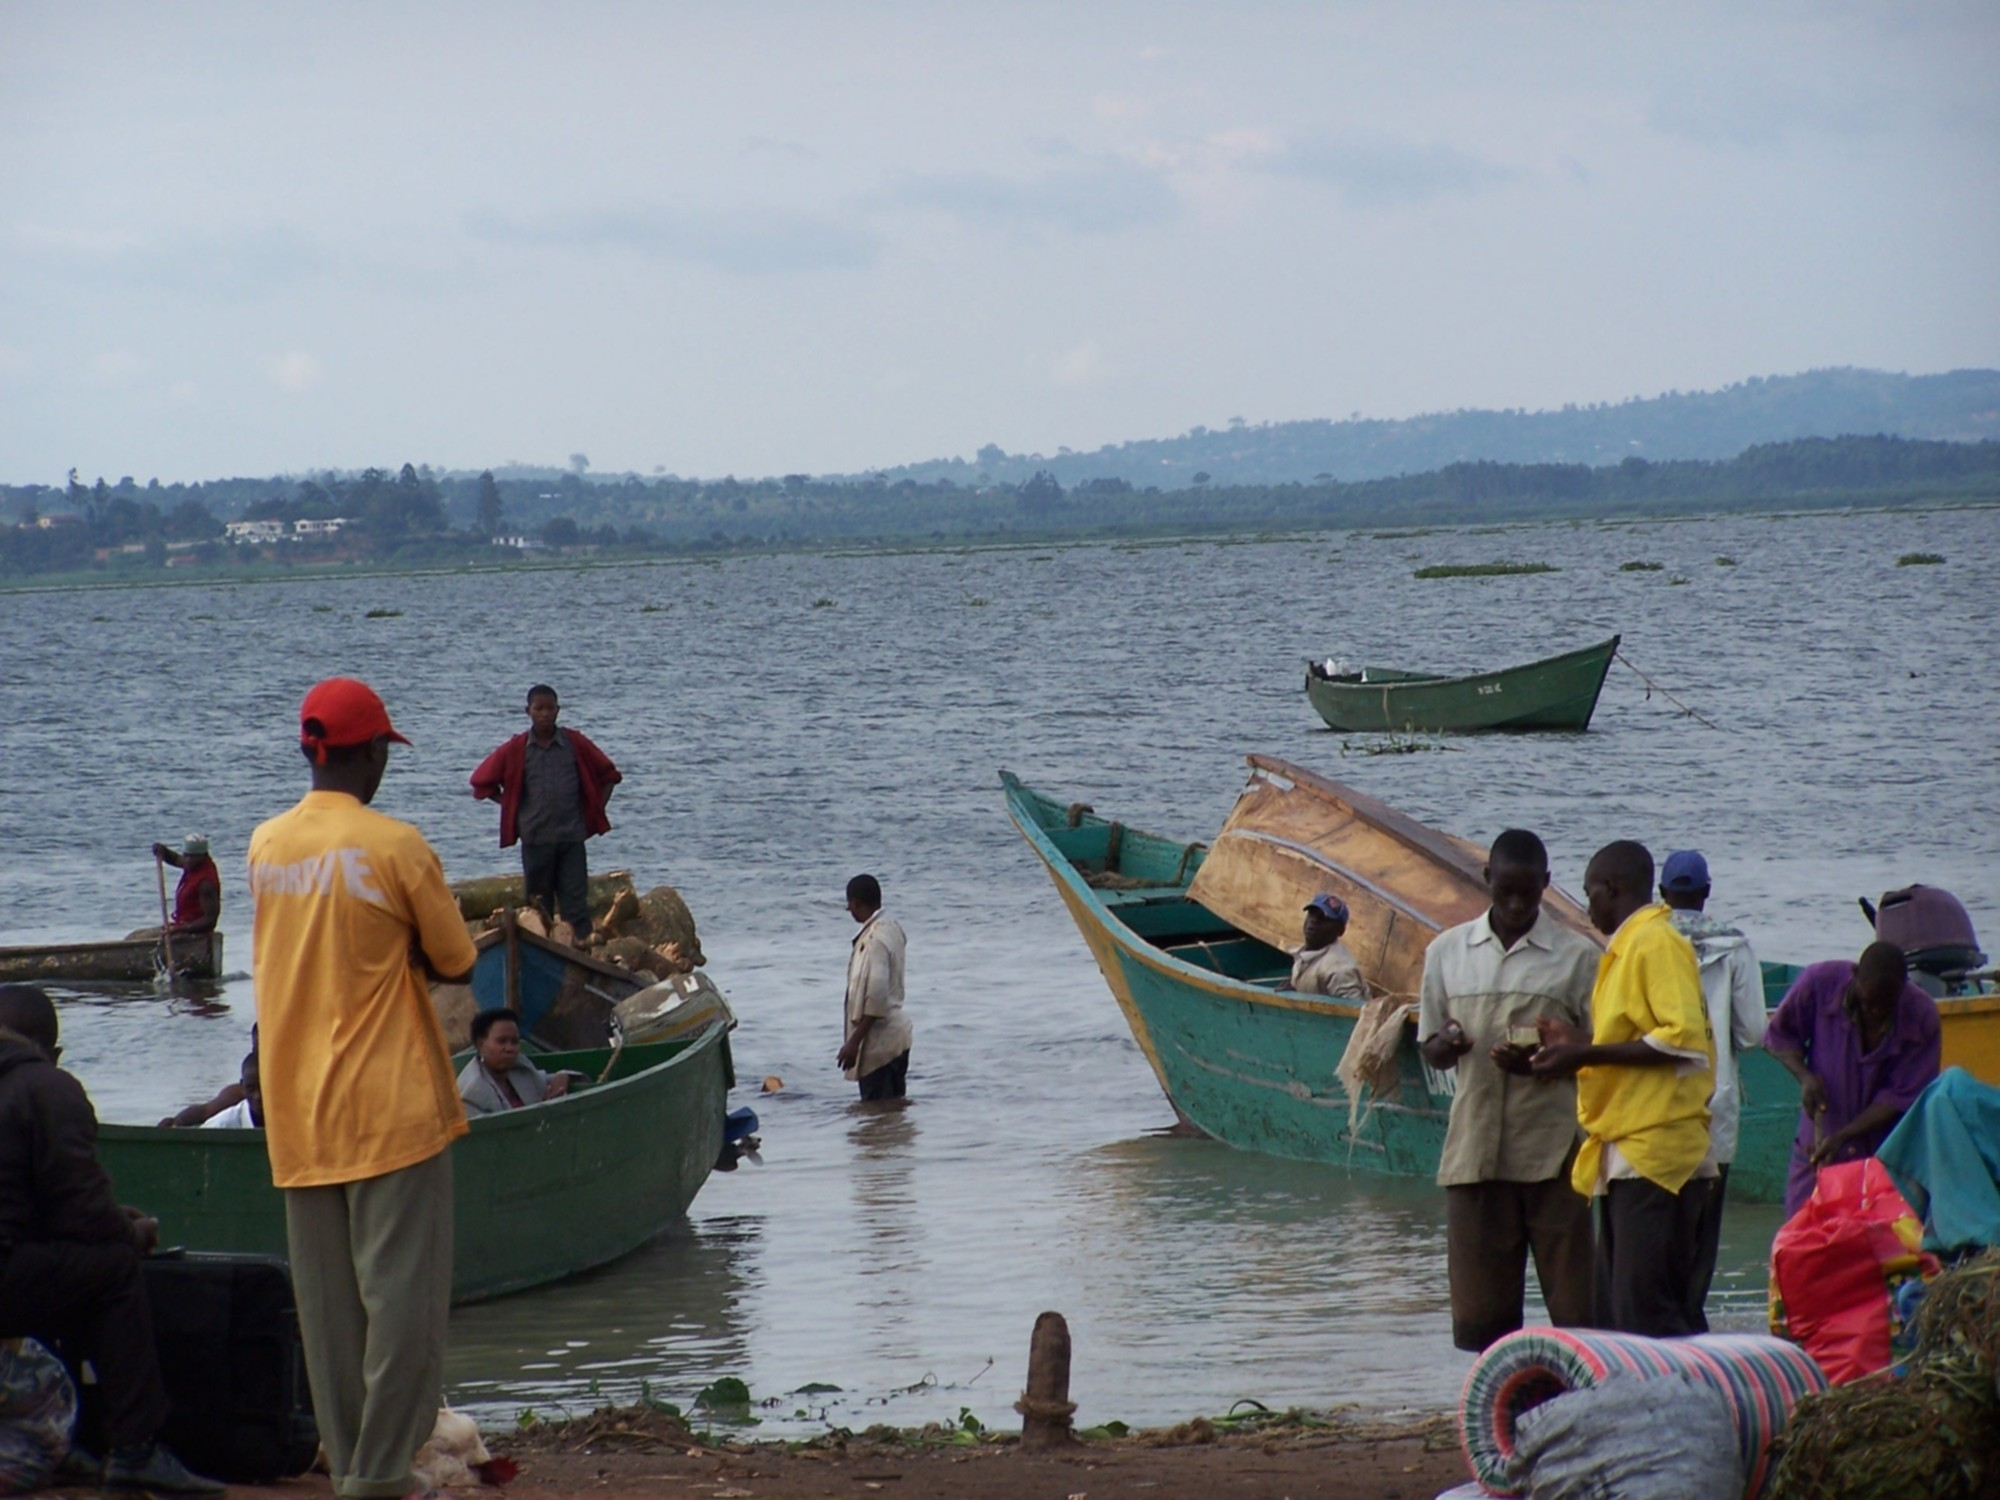 Fishermen and their boats